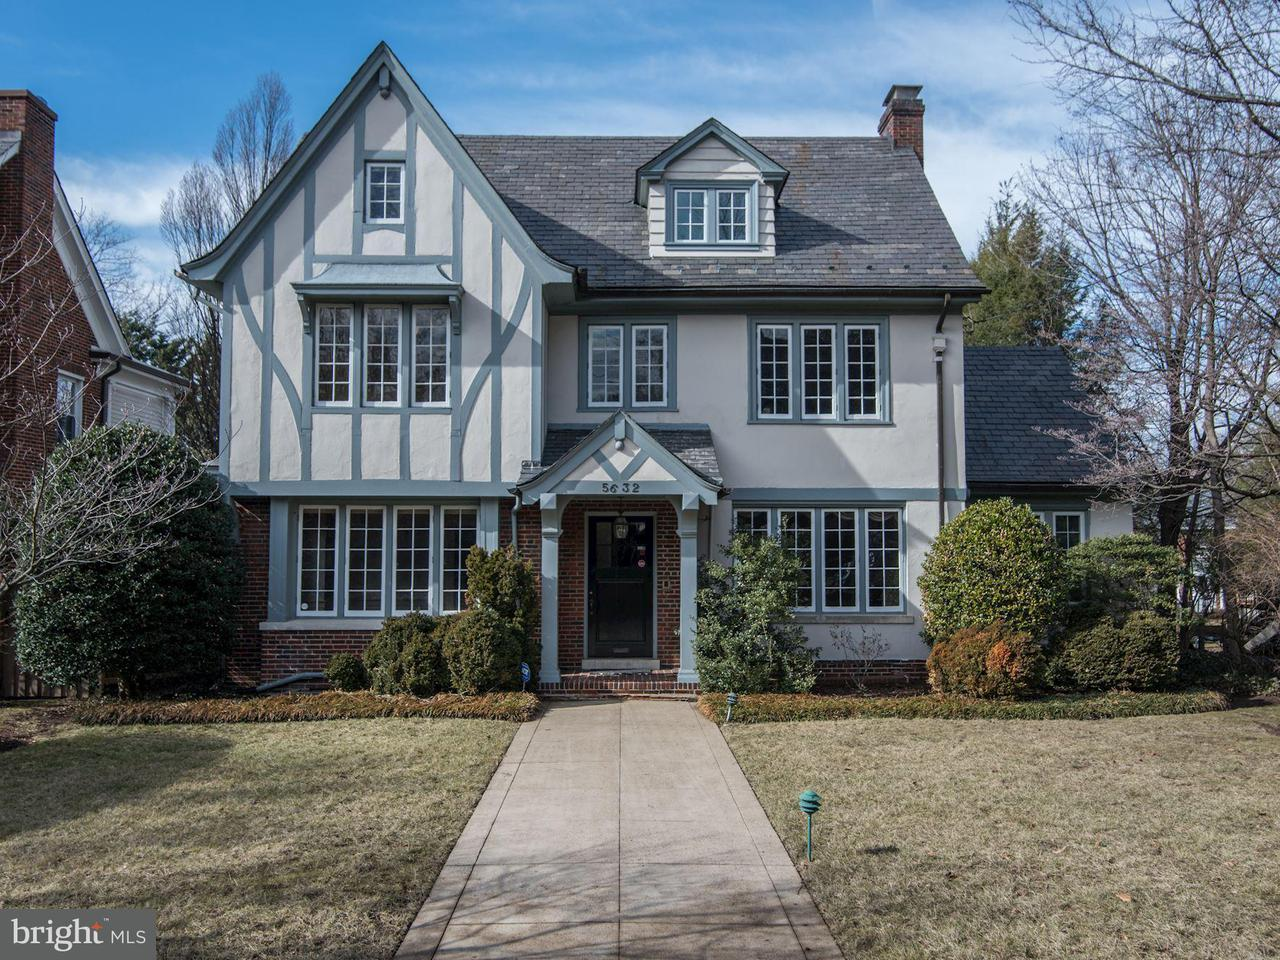 Single Family Home for Sale at 5632 Western Avenue 5632 Western Avenue Chevy Chase, Maryland 20815 United States